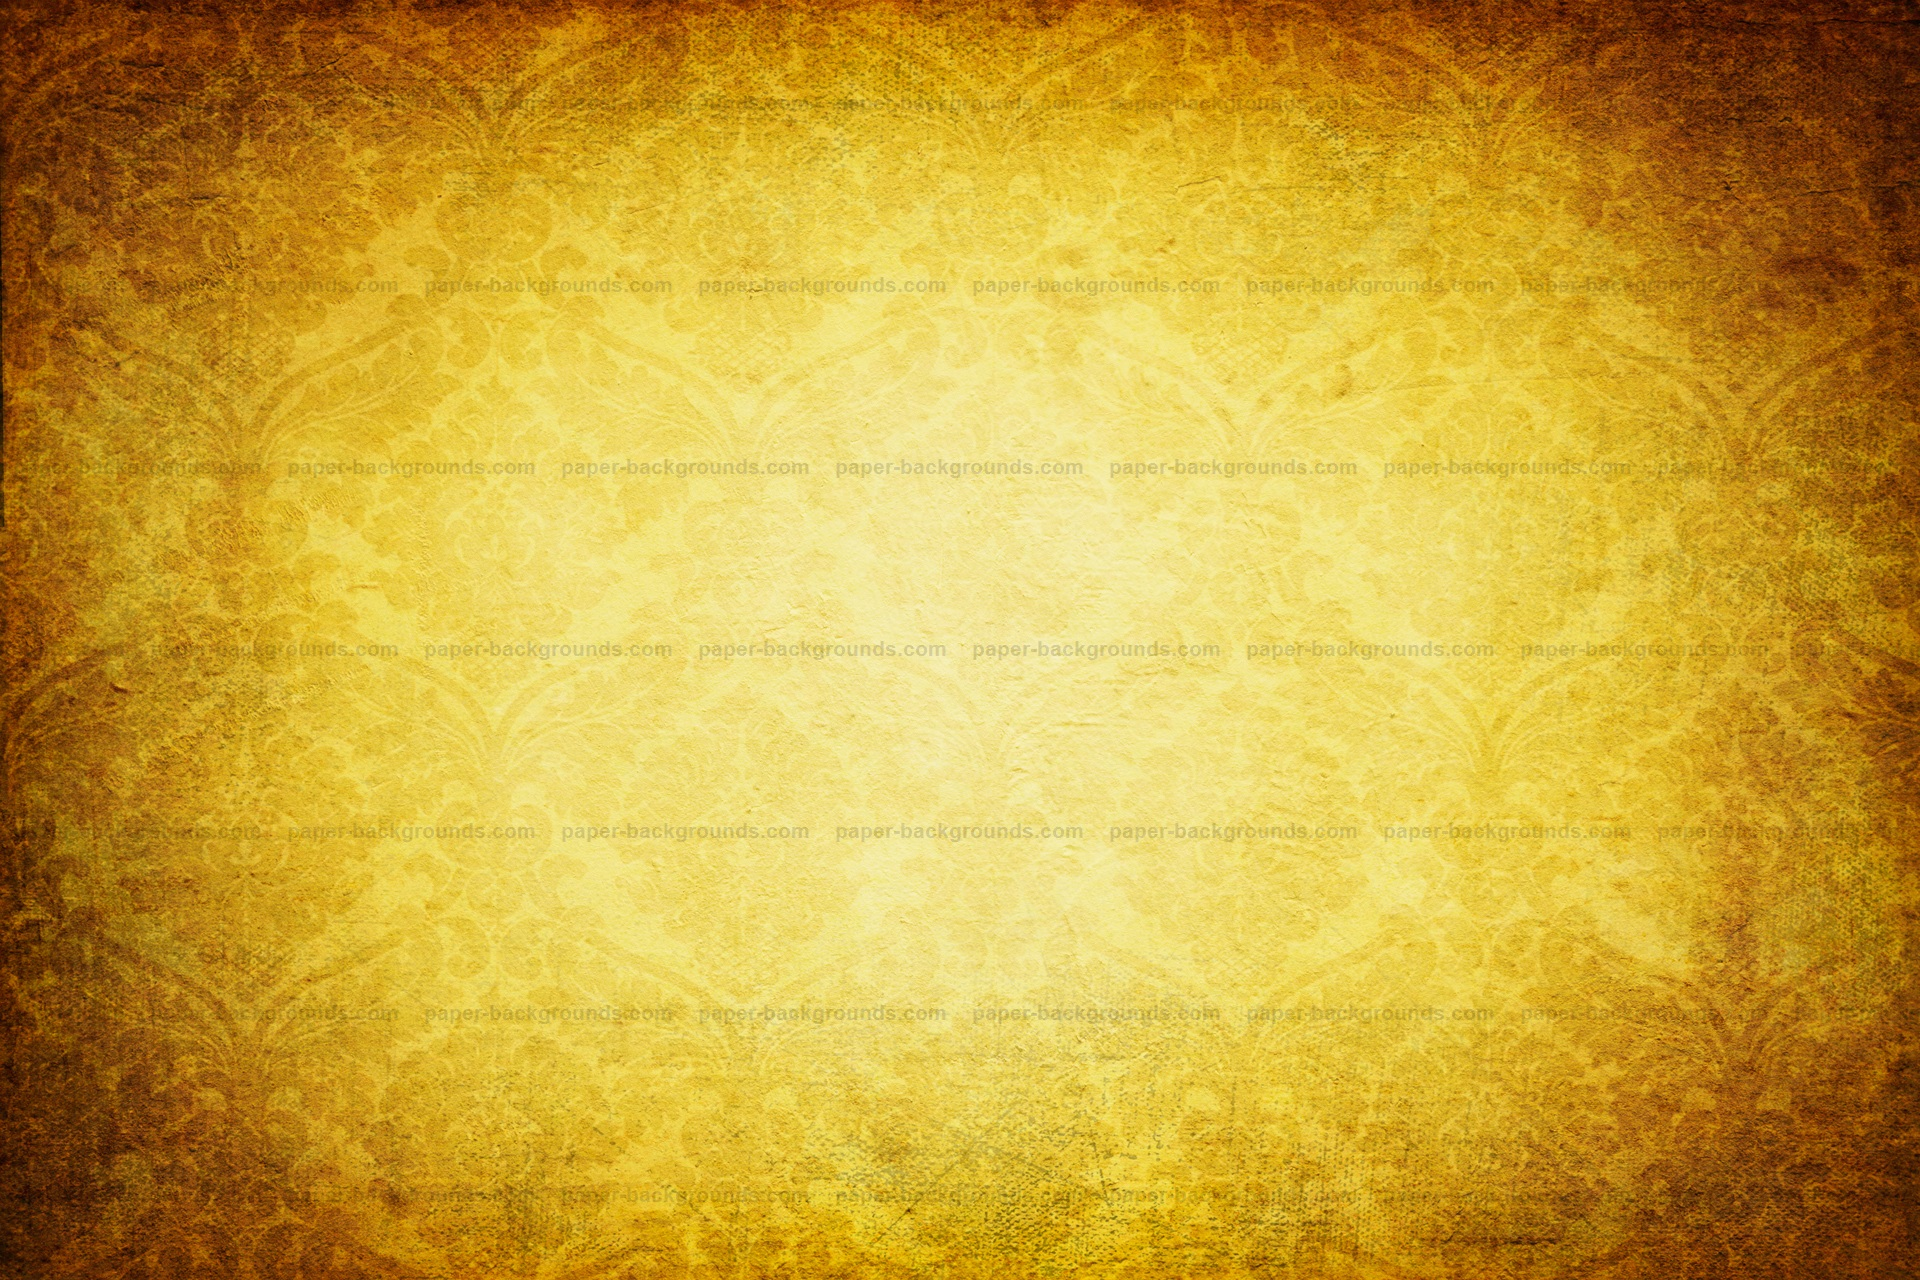 Vintage Shabby Background with Classy Patterns HD